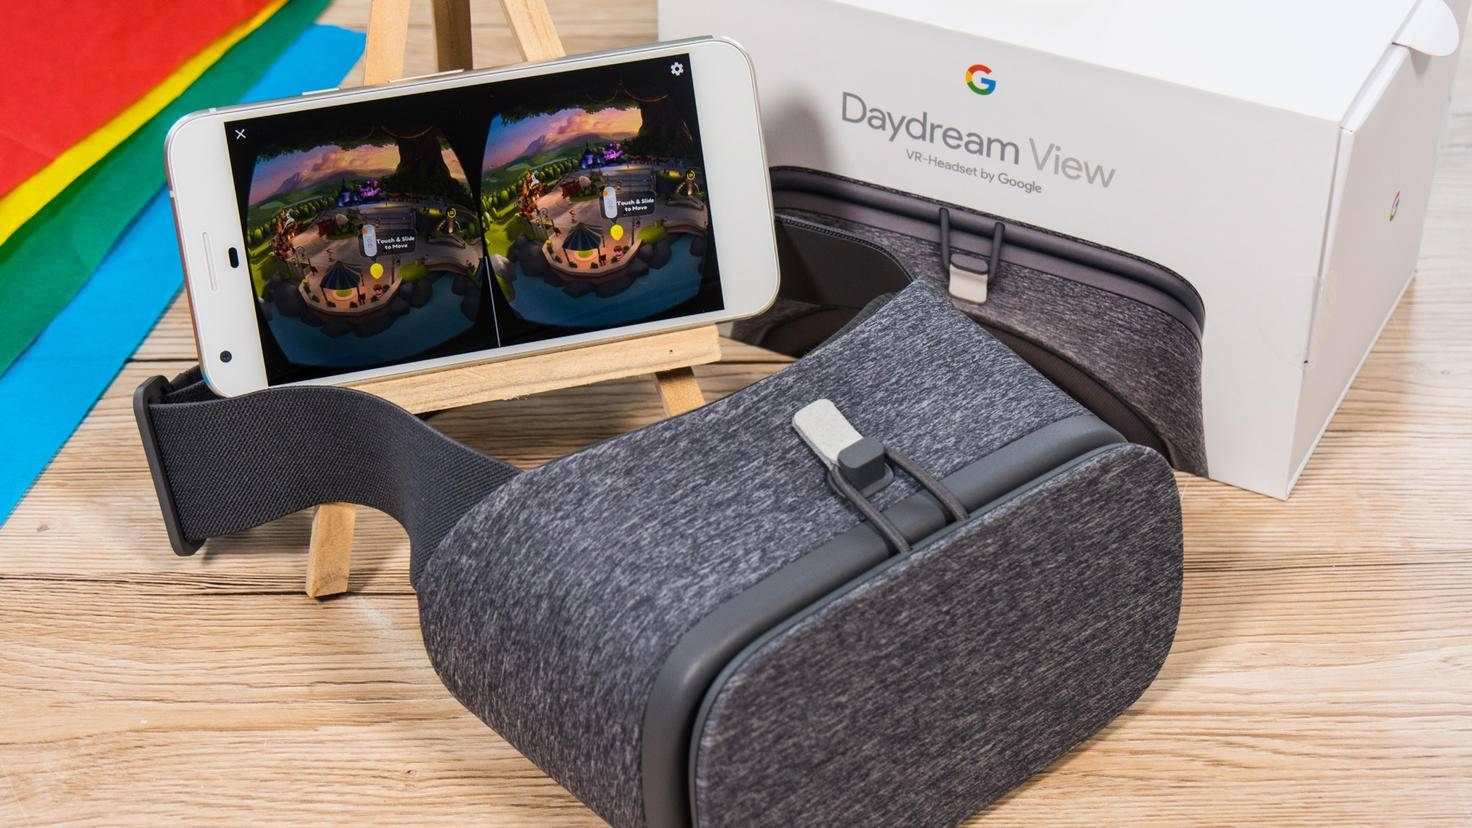 Daydream View 19